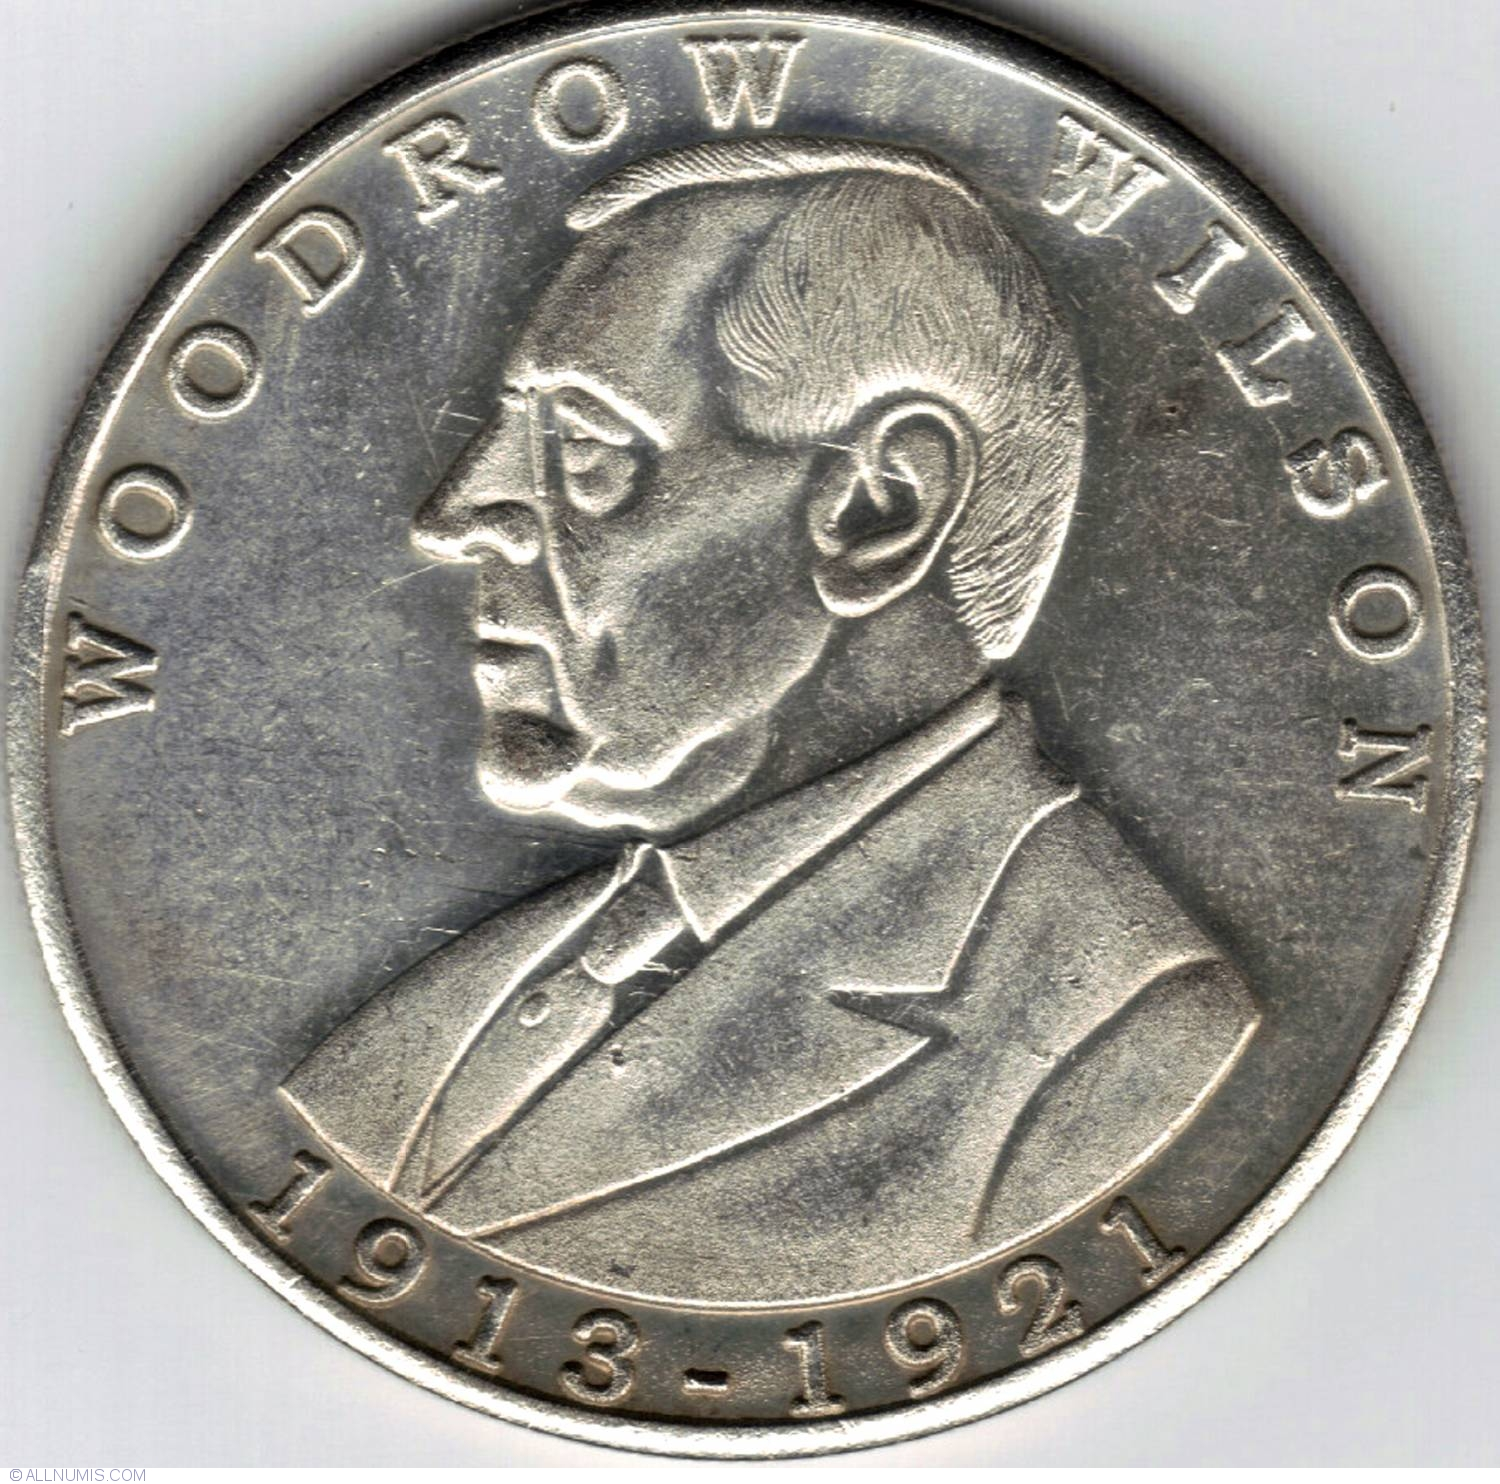 Woodrow Wilson Fantasy Token United States Of America